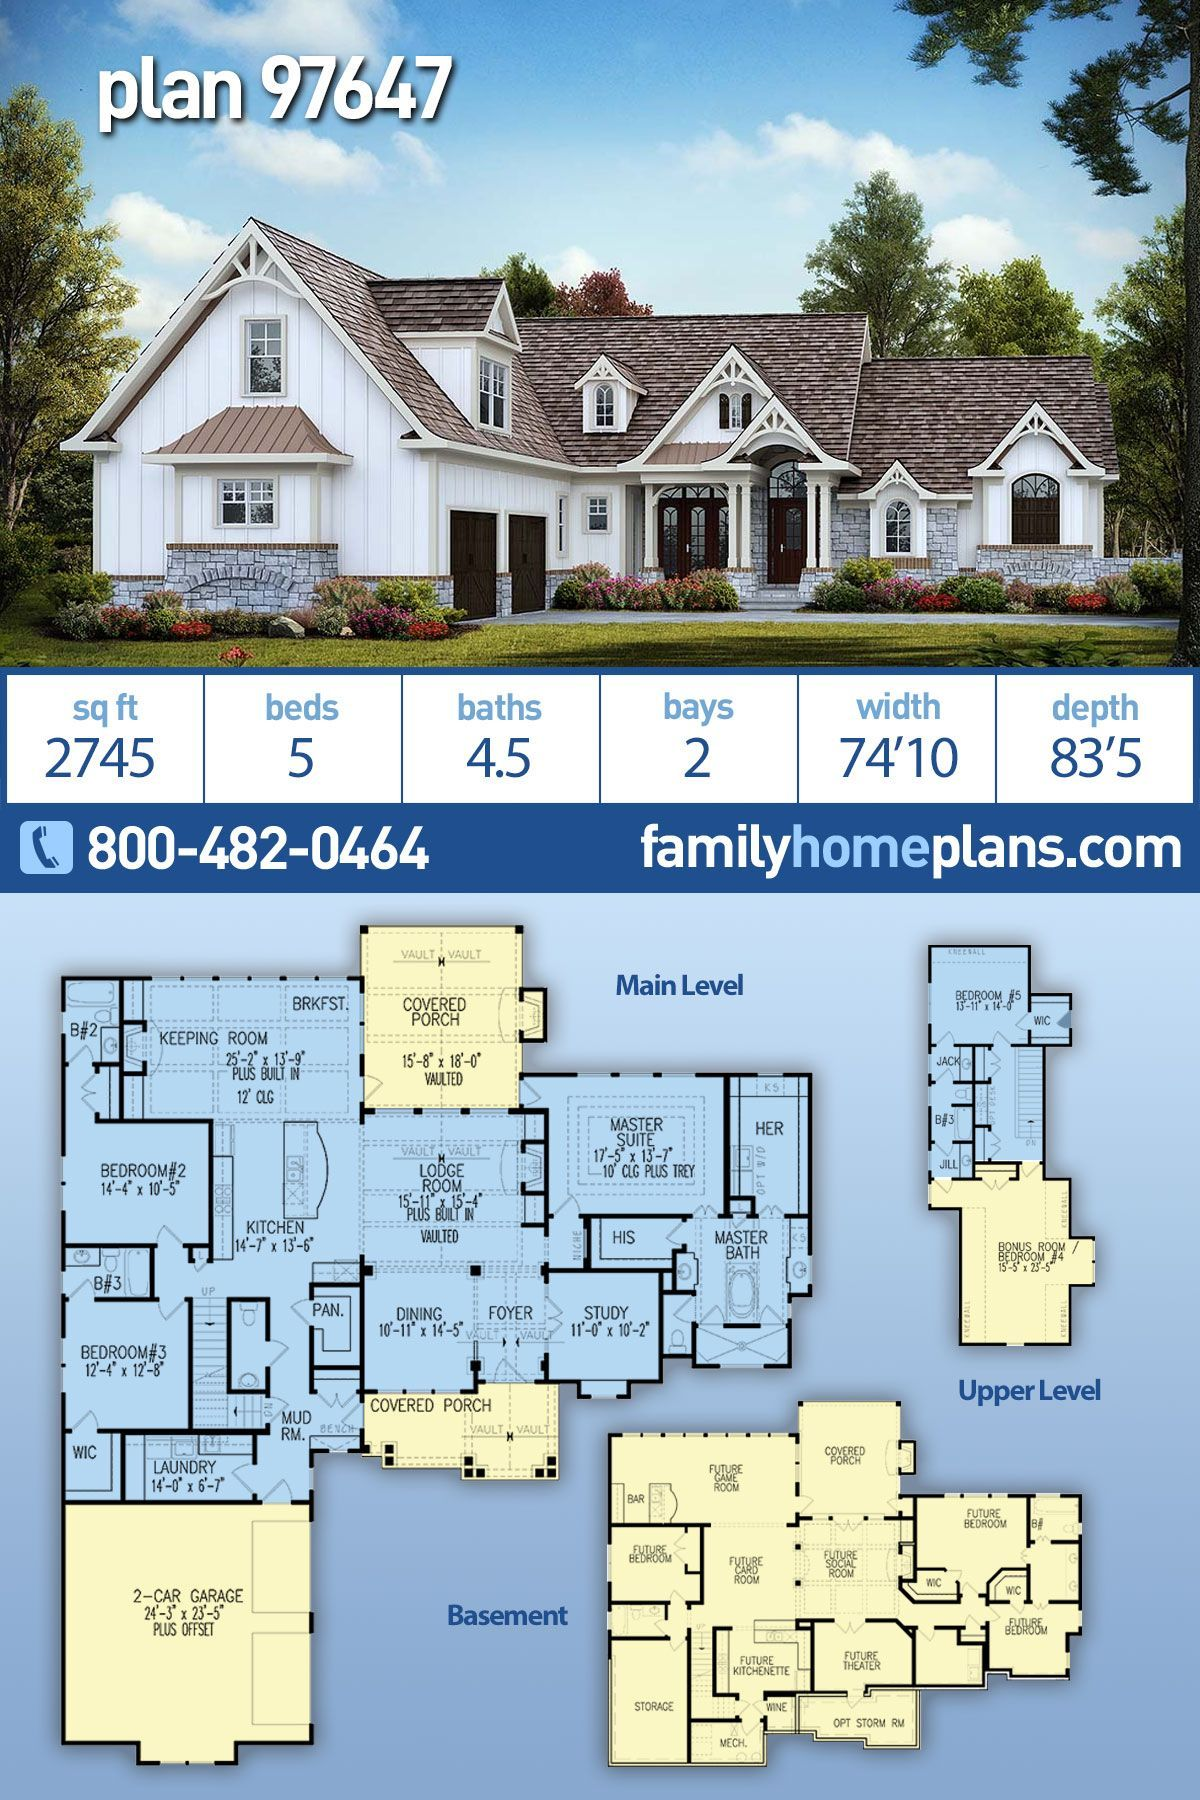 Craftsman Style House Plan 97647 With 5 Bed 5 Bath 2 Car Garage In 2020 Craftsman Style House Plans Craftsman House Plans Basement House Plans